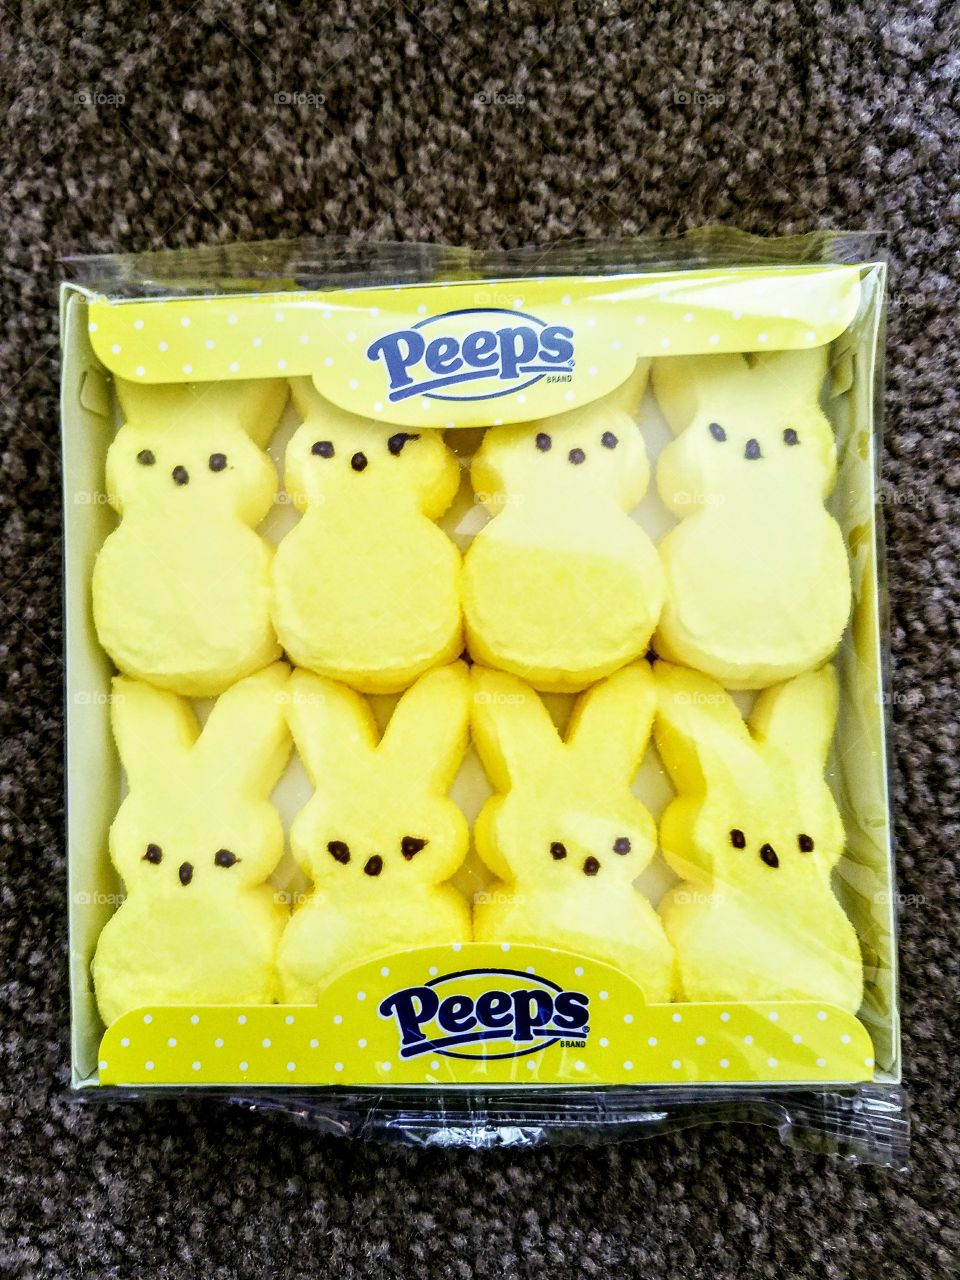 There's No Easter Without Peeps